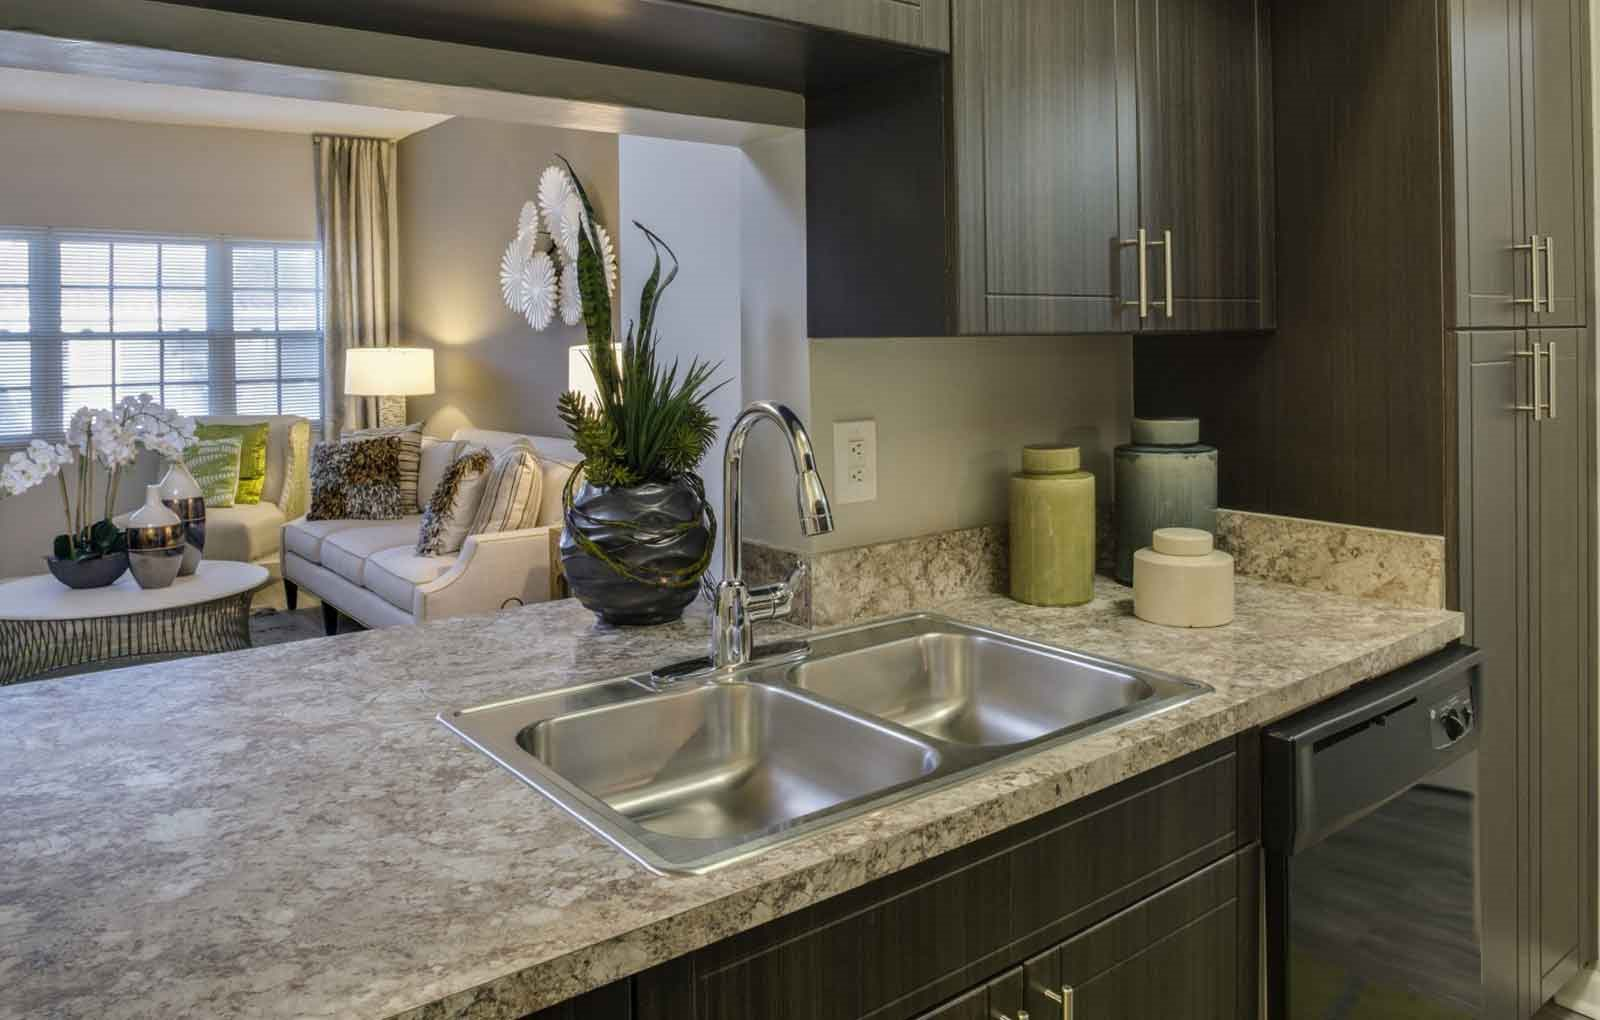 Kitchen at Marela Apartments in Pembroke Pines, FL